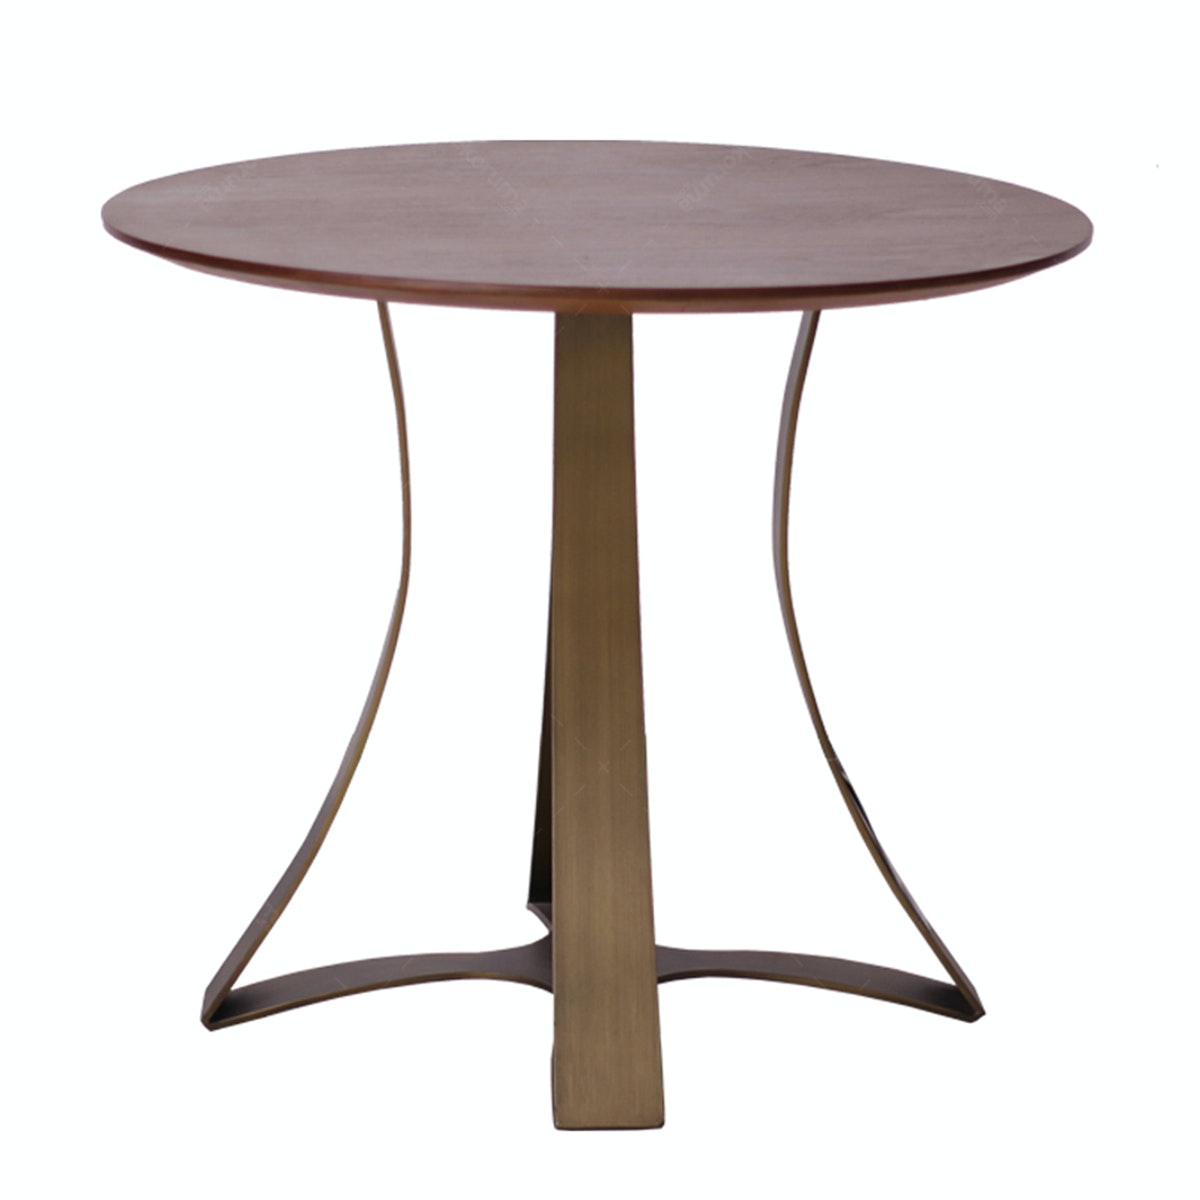 Thema Home End Table Perme SLS